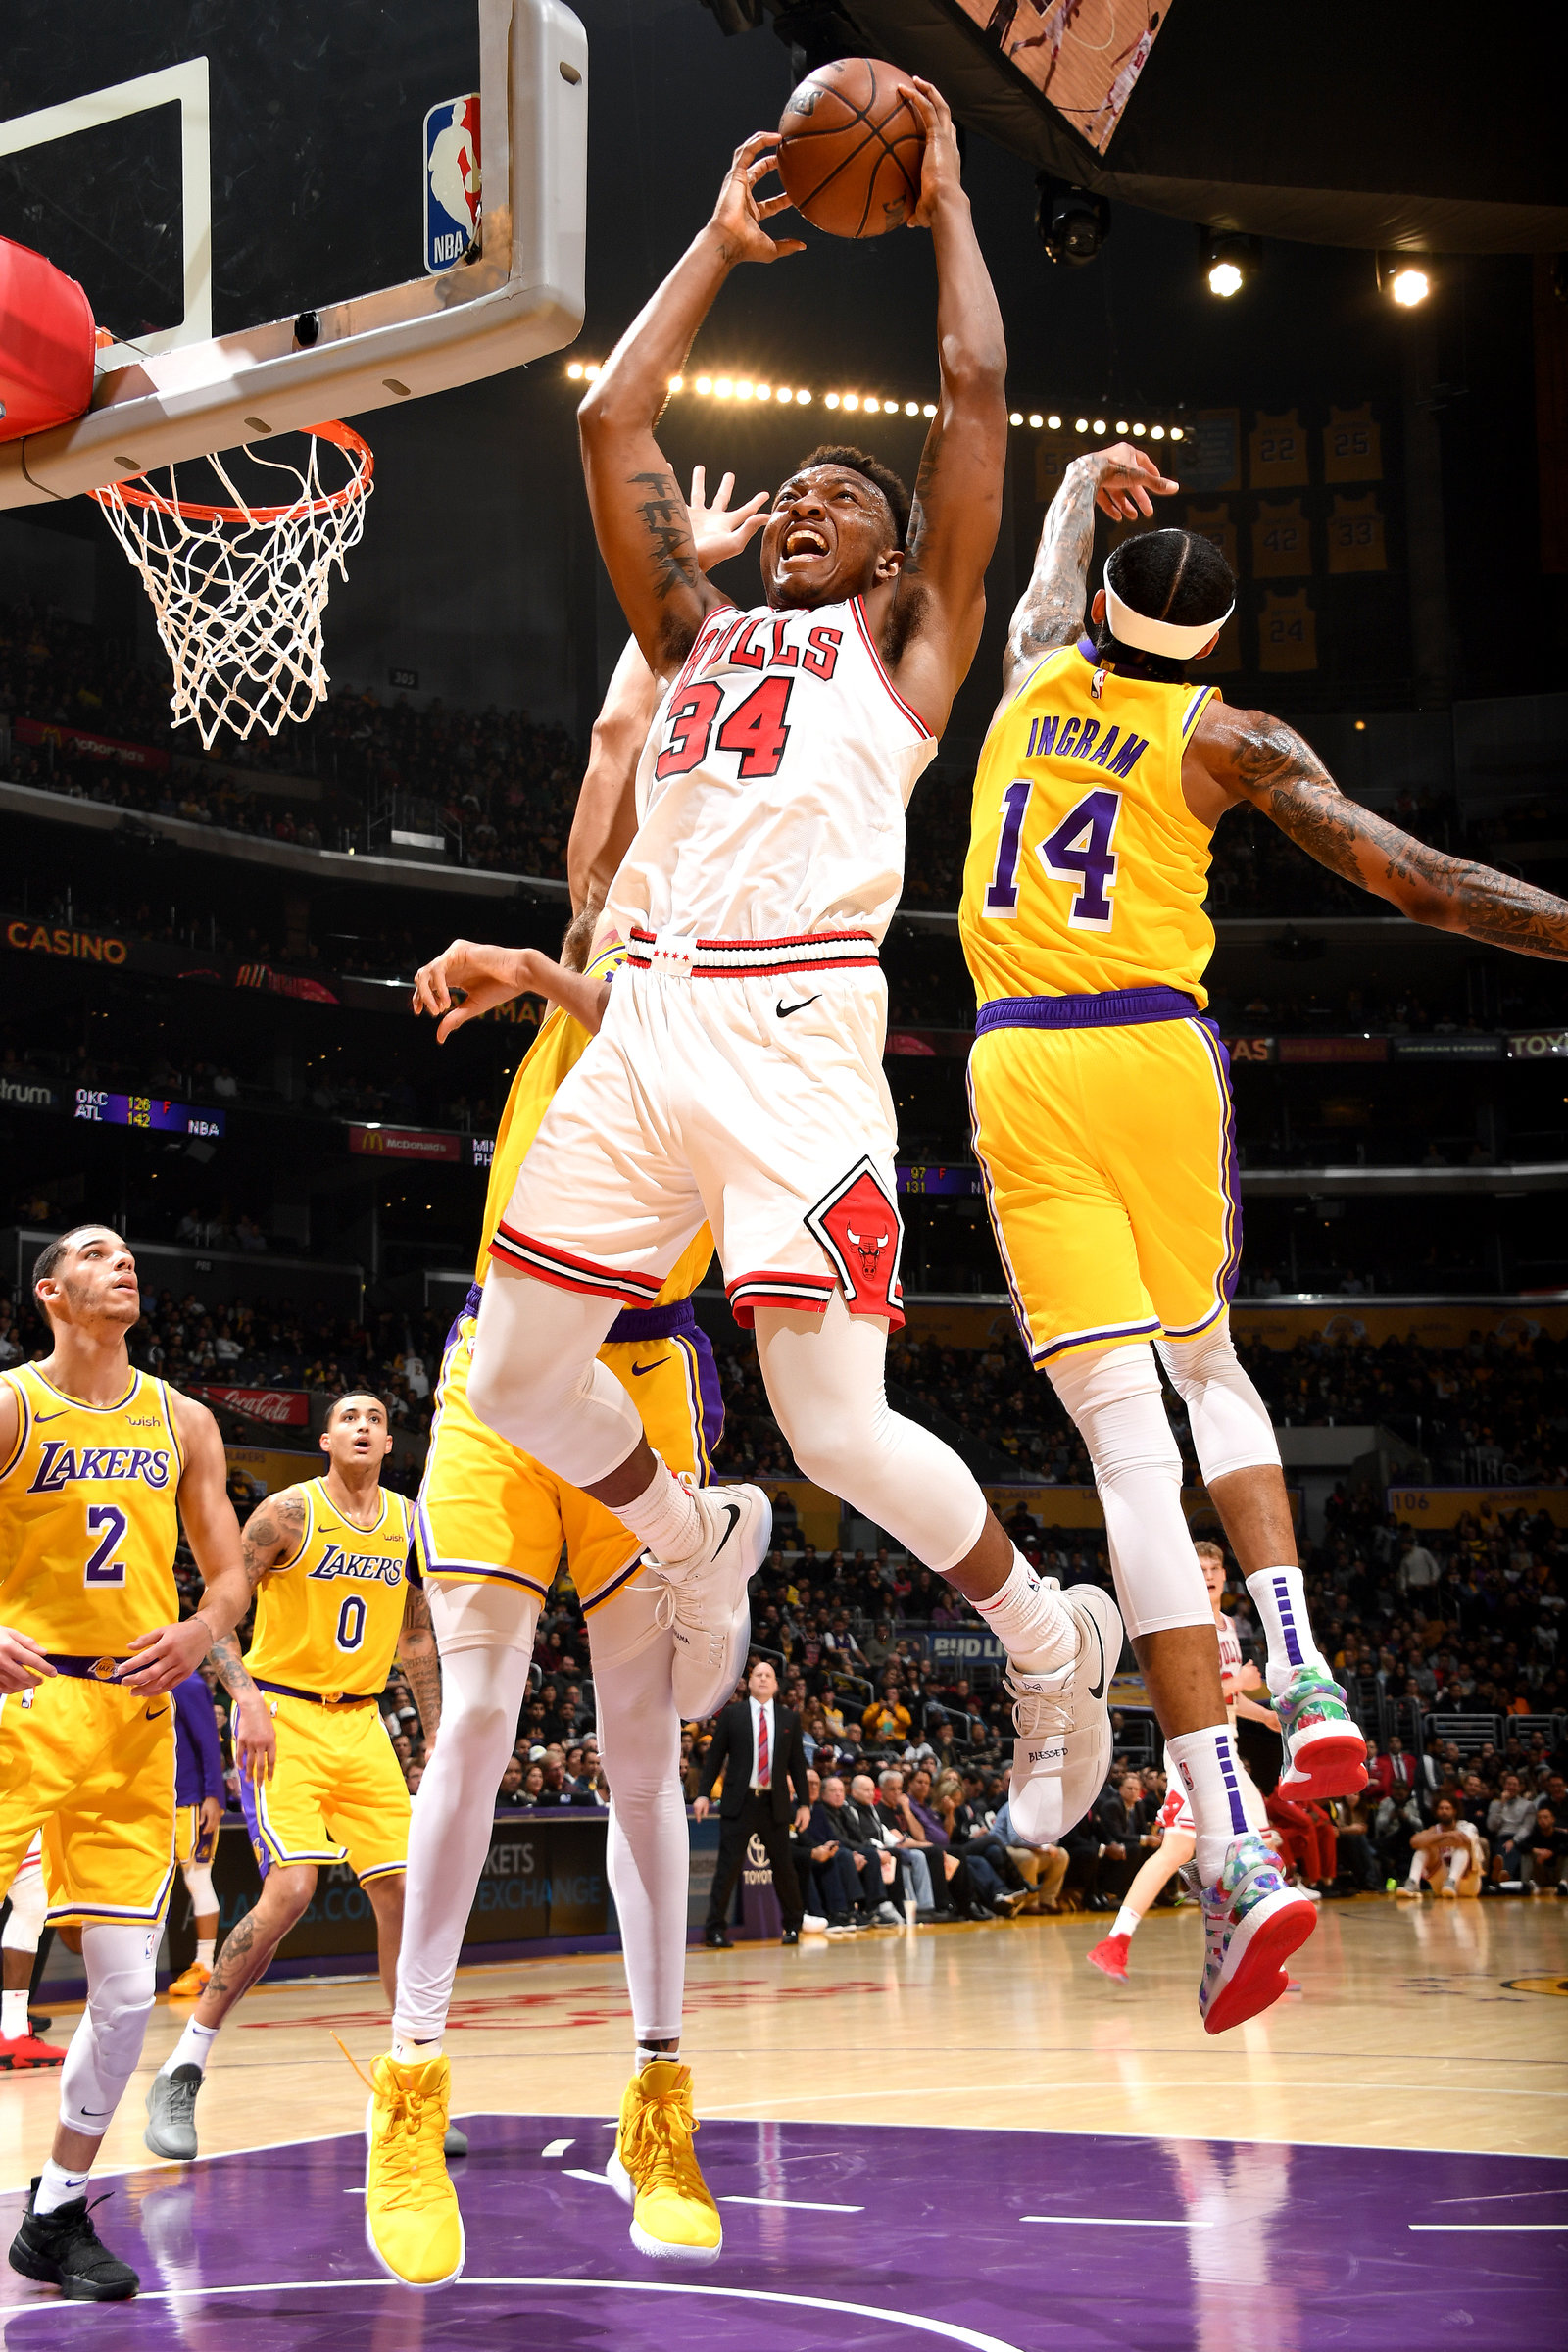 Wendell Carter Jr. scores against the Lakers